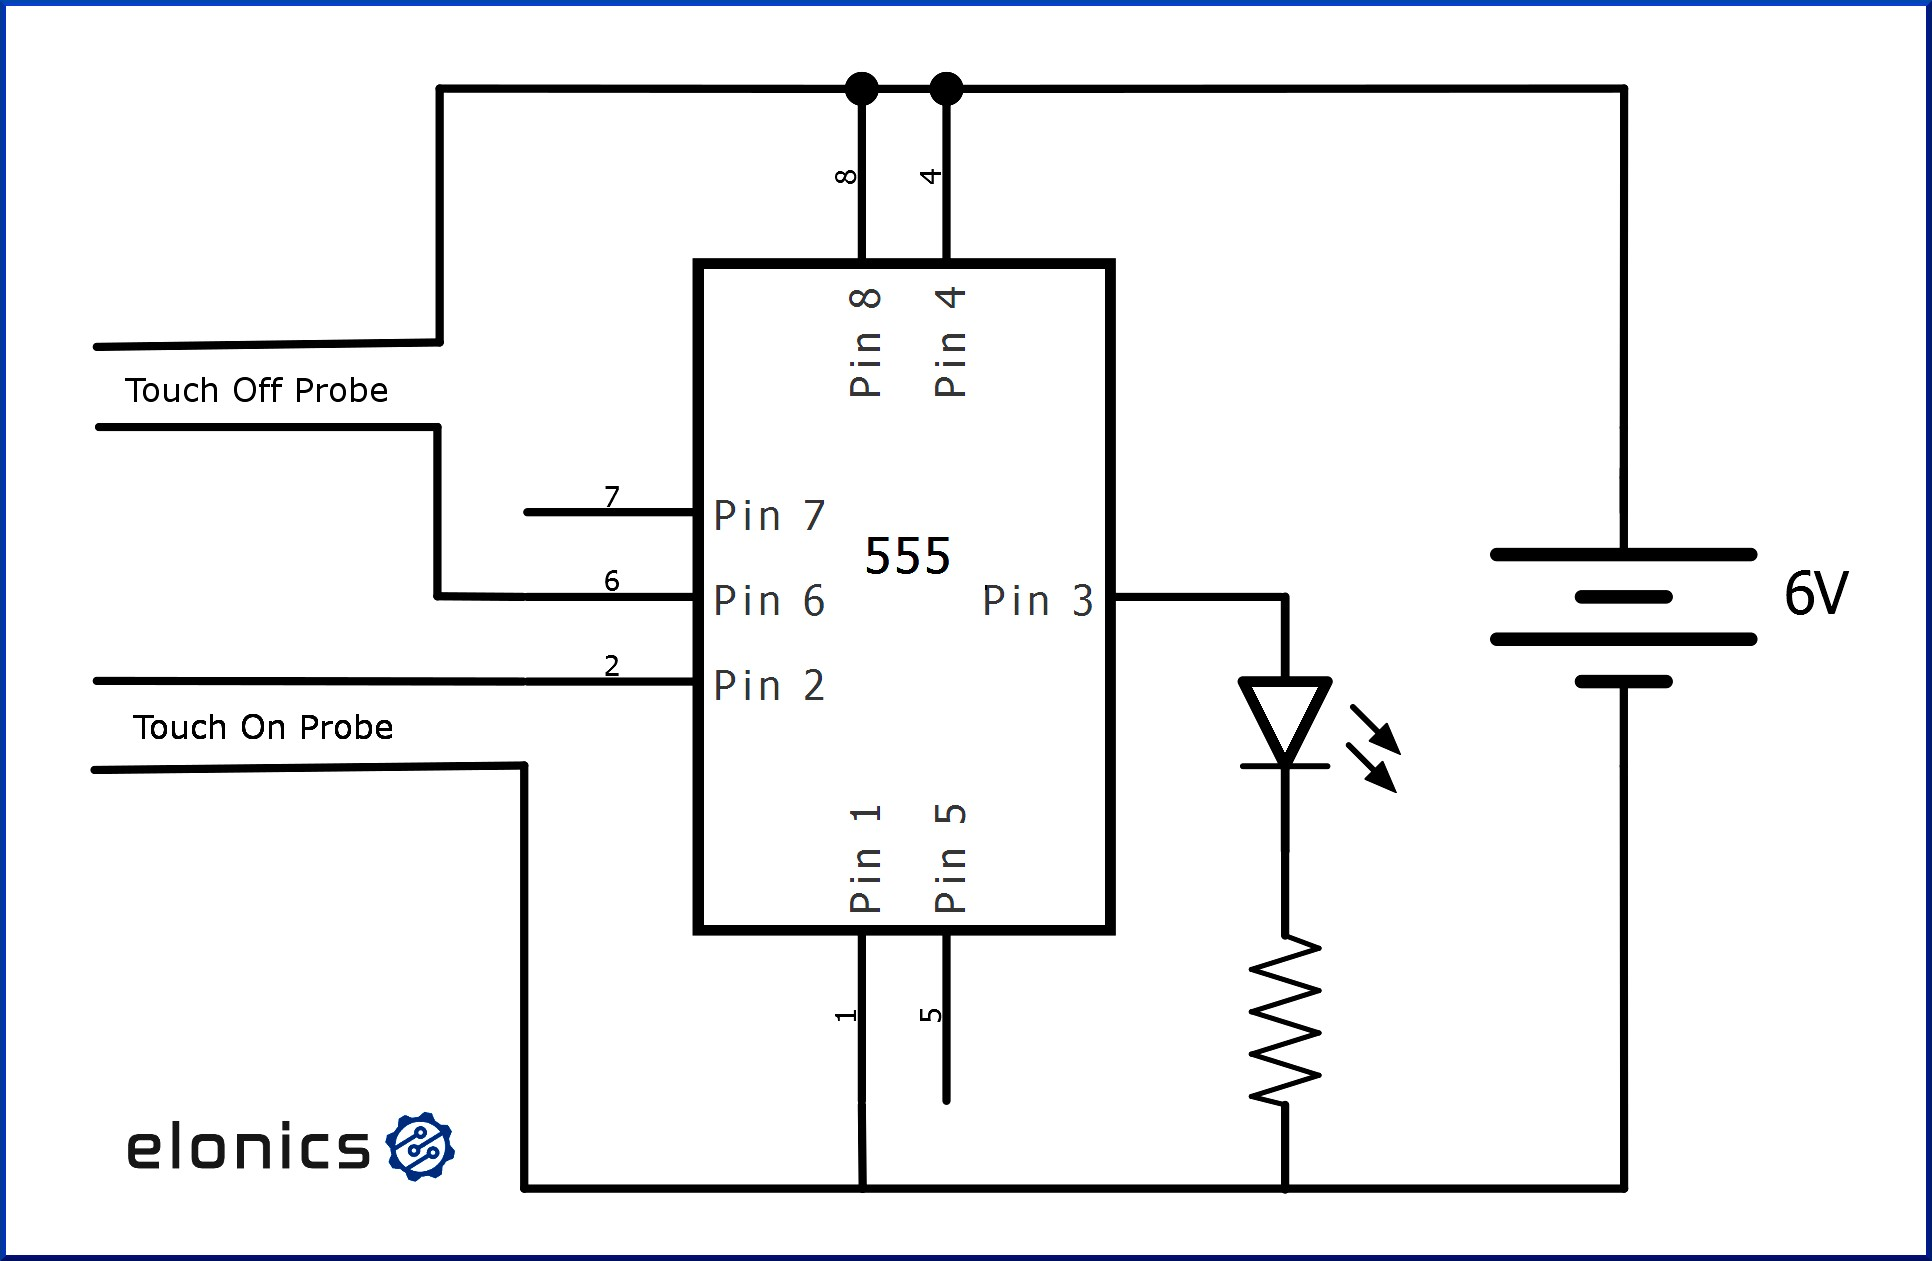 delay timer circuit schematics